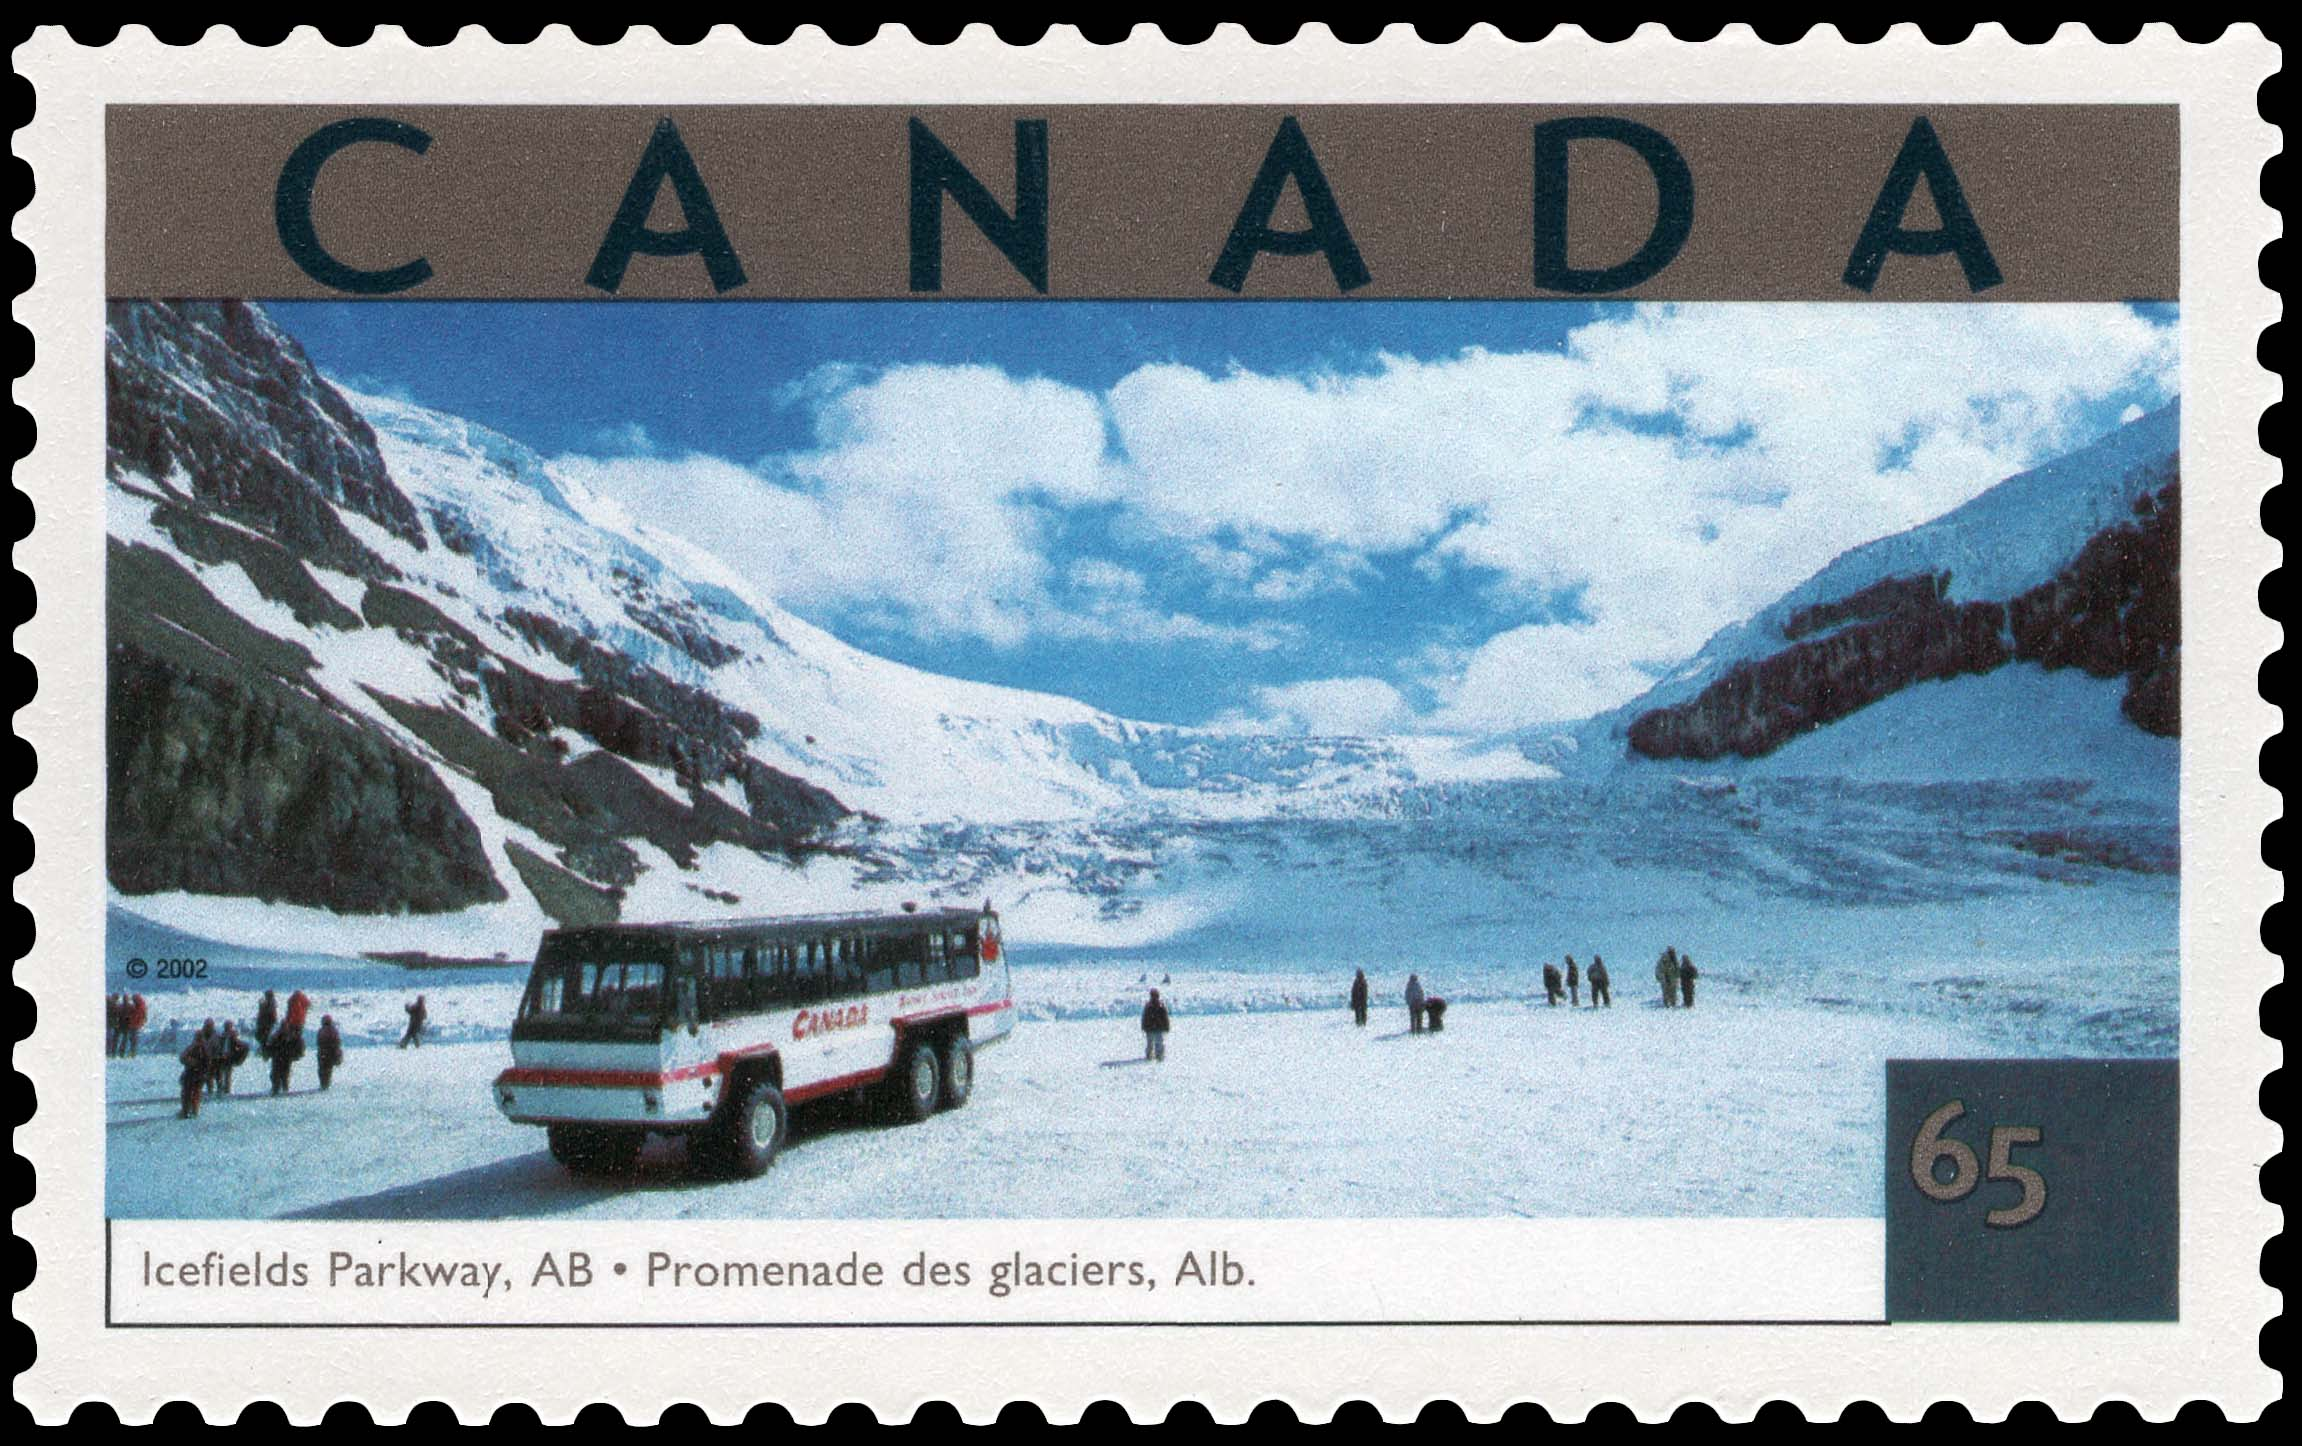 Icefields Parkway, Alberta Canada Postage Stamp   Tourist Attractions